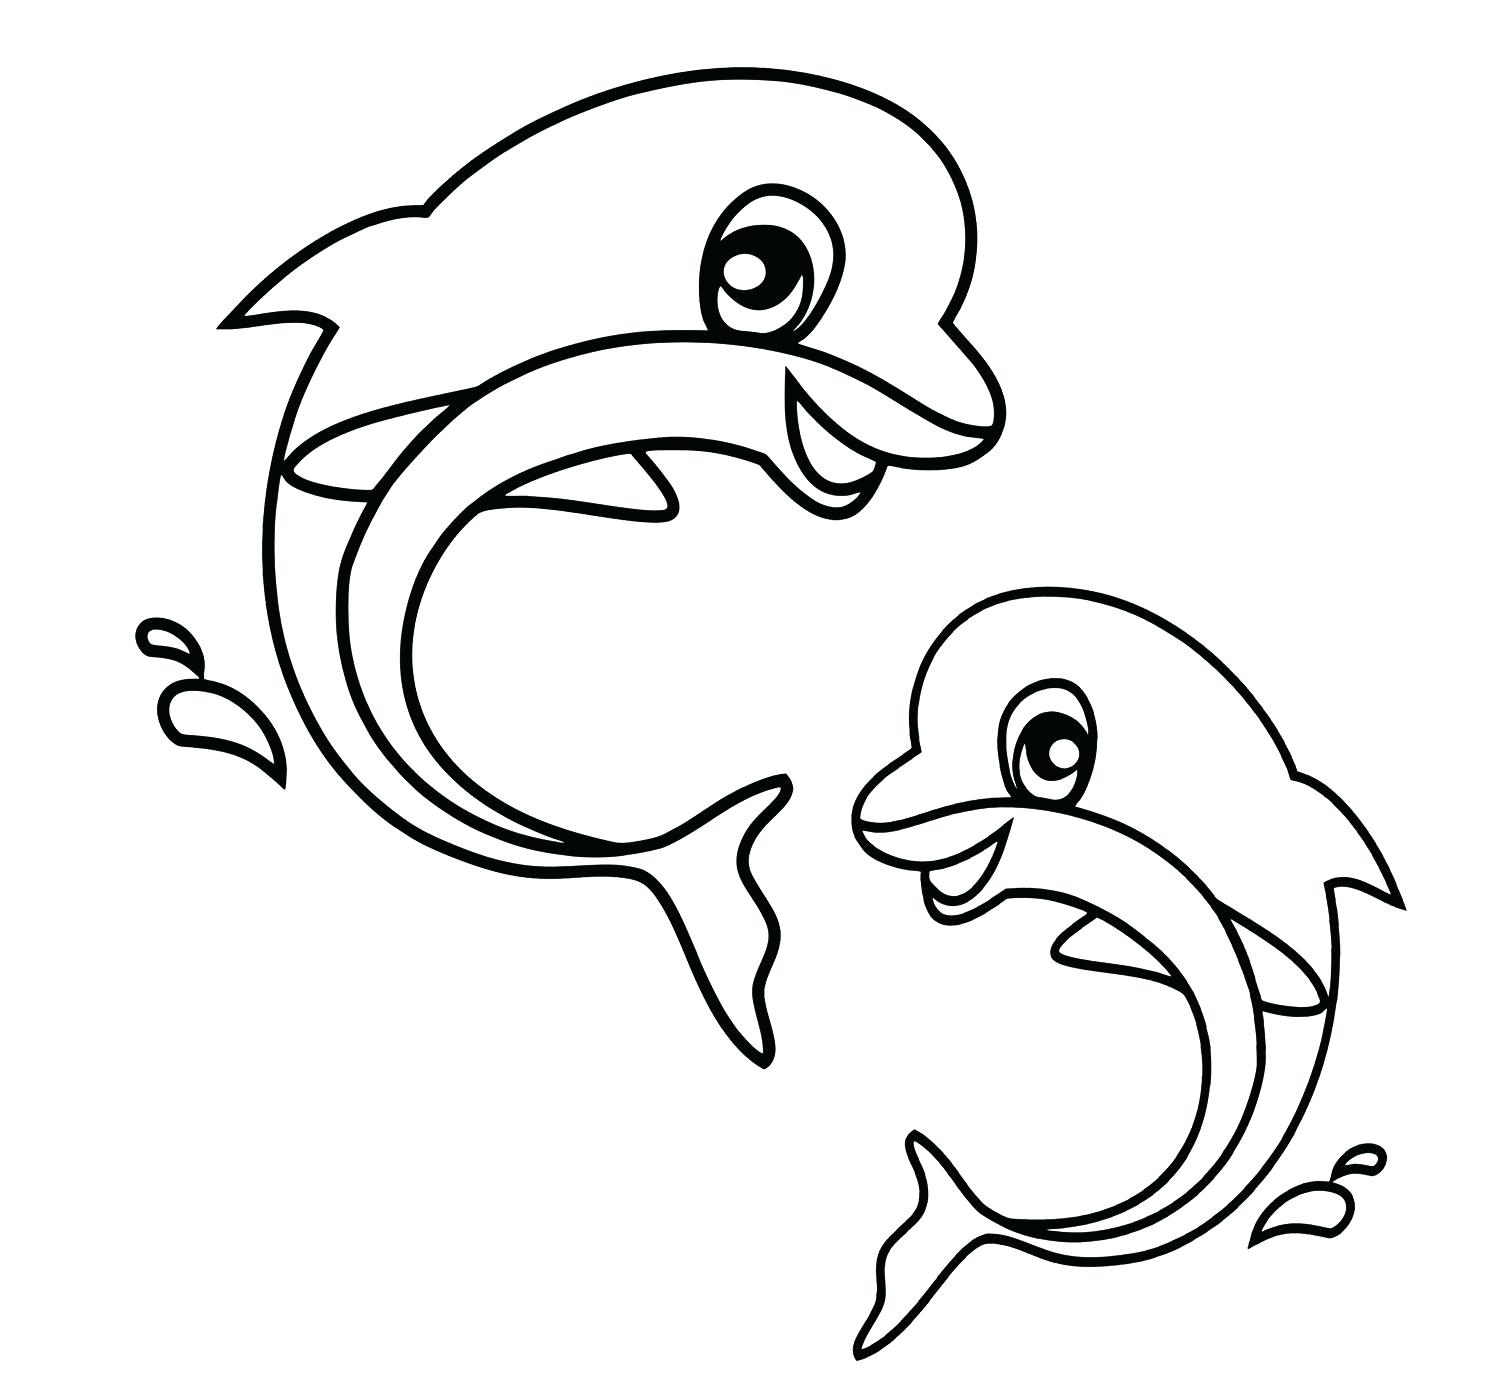 1500x1374 Coloring Cute Easy Coloring Pages